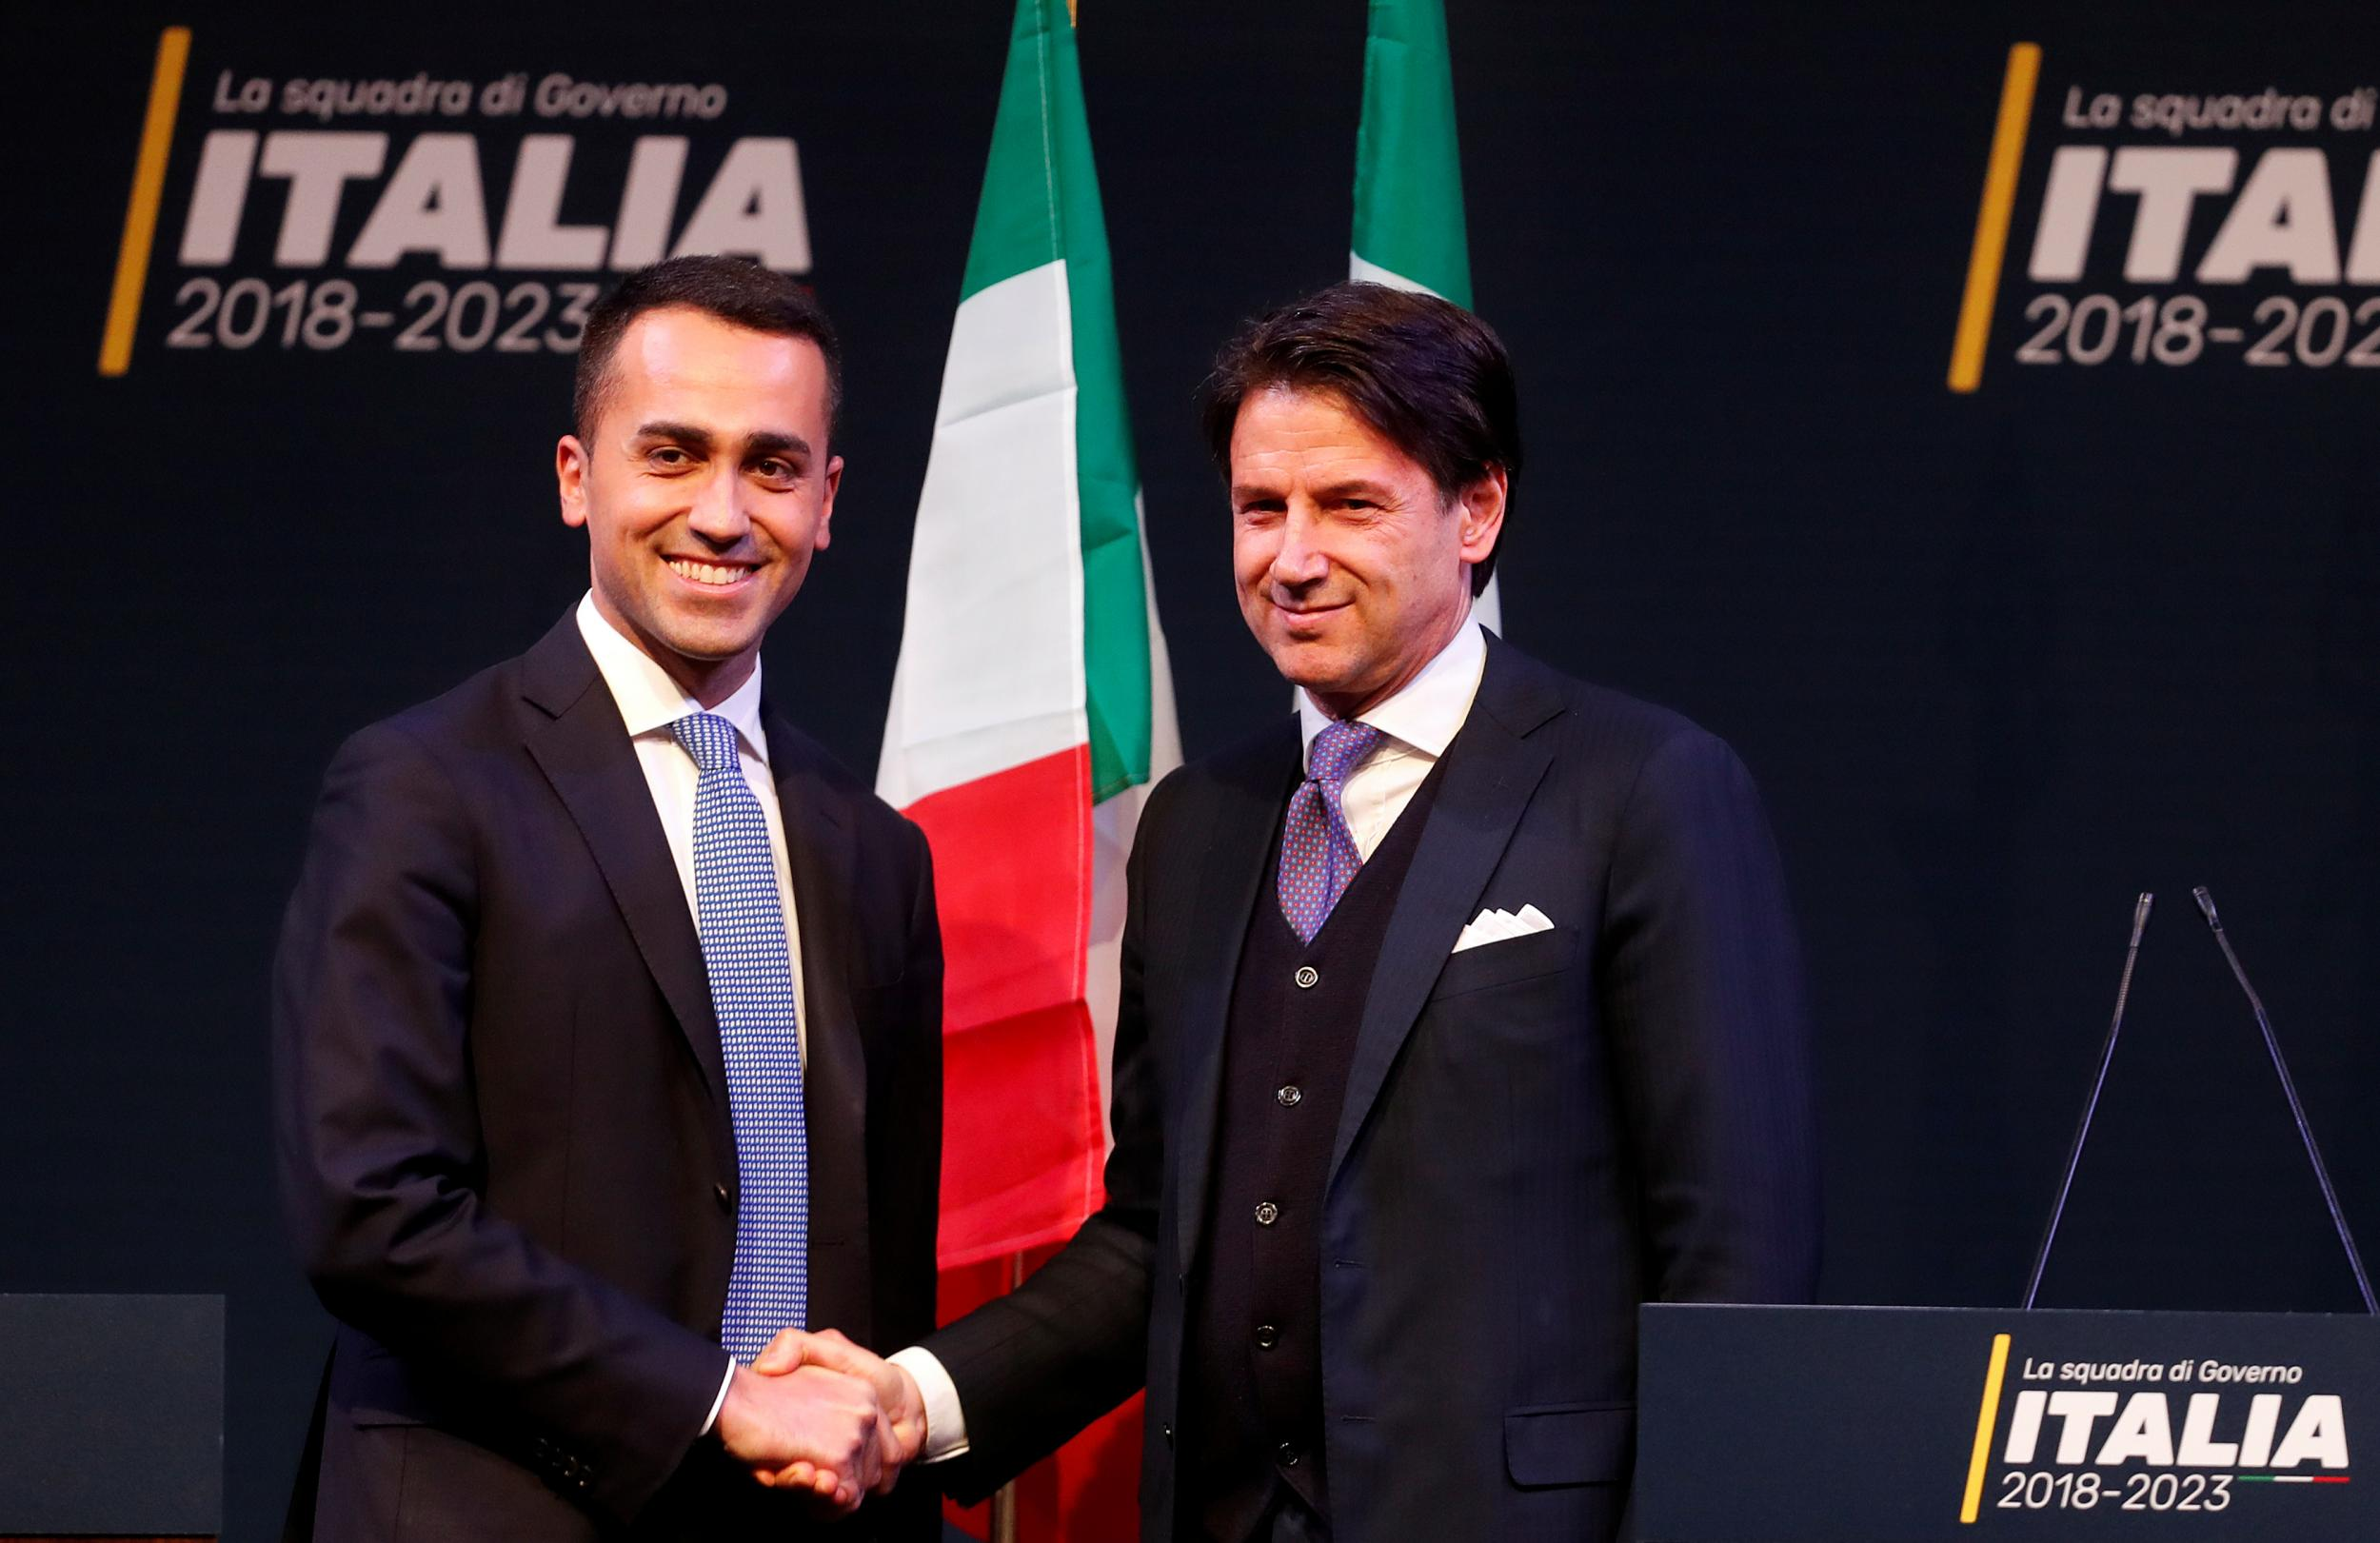 Italy's would-be populist prime minister faces difficult questions about accuracy of his CV